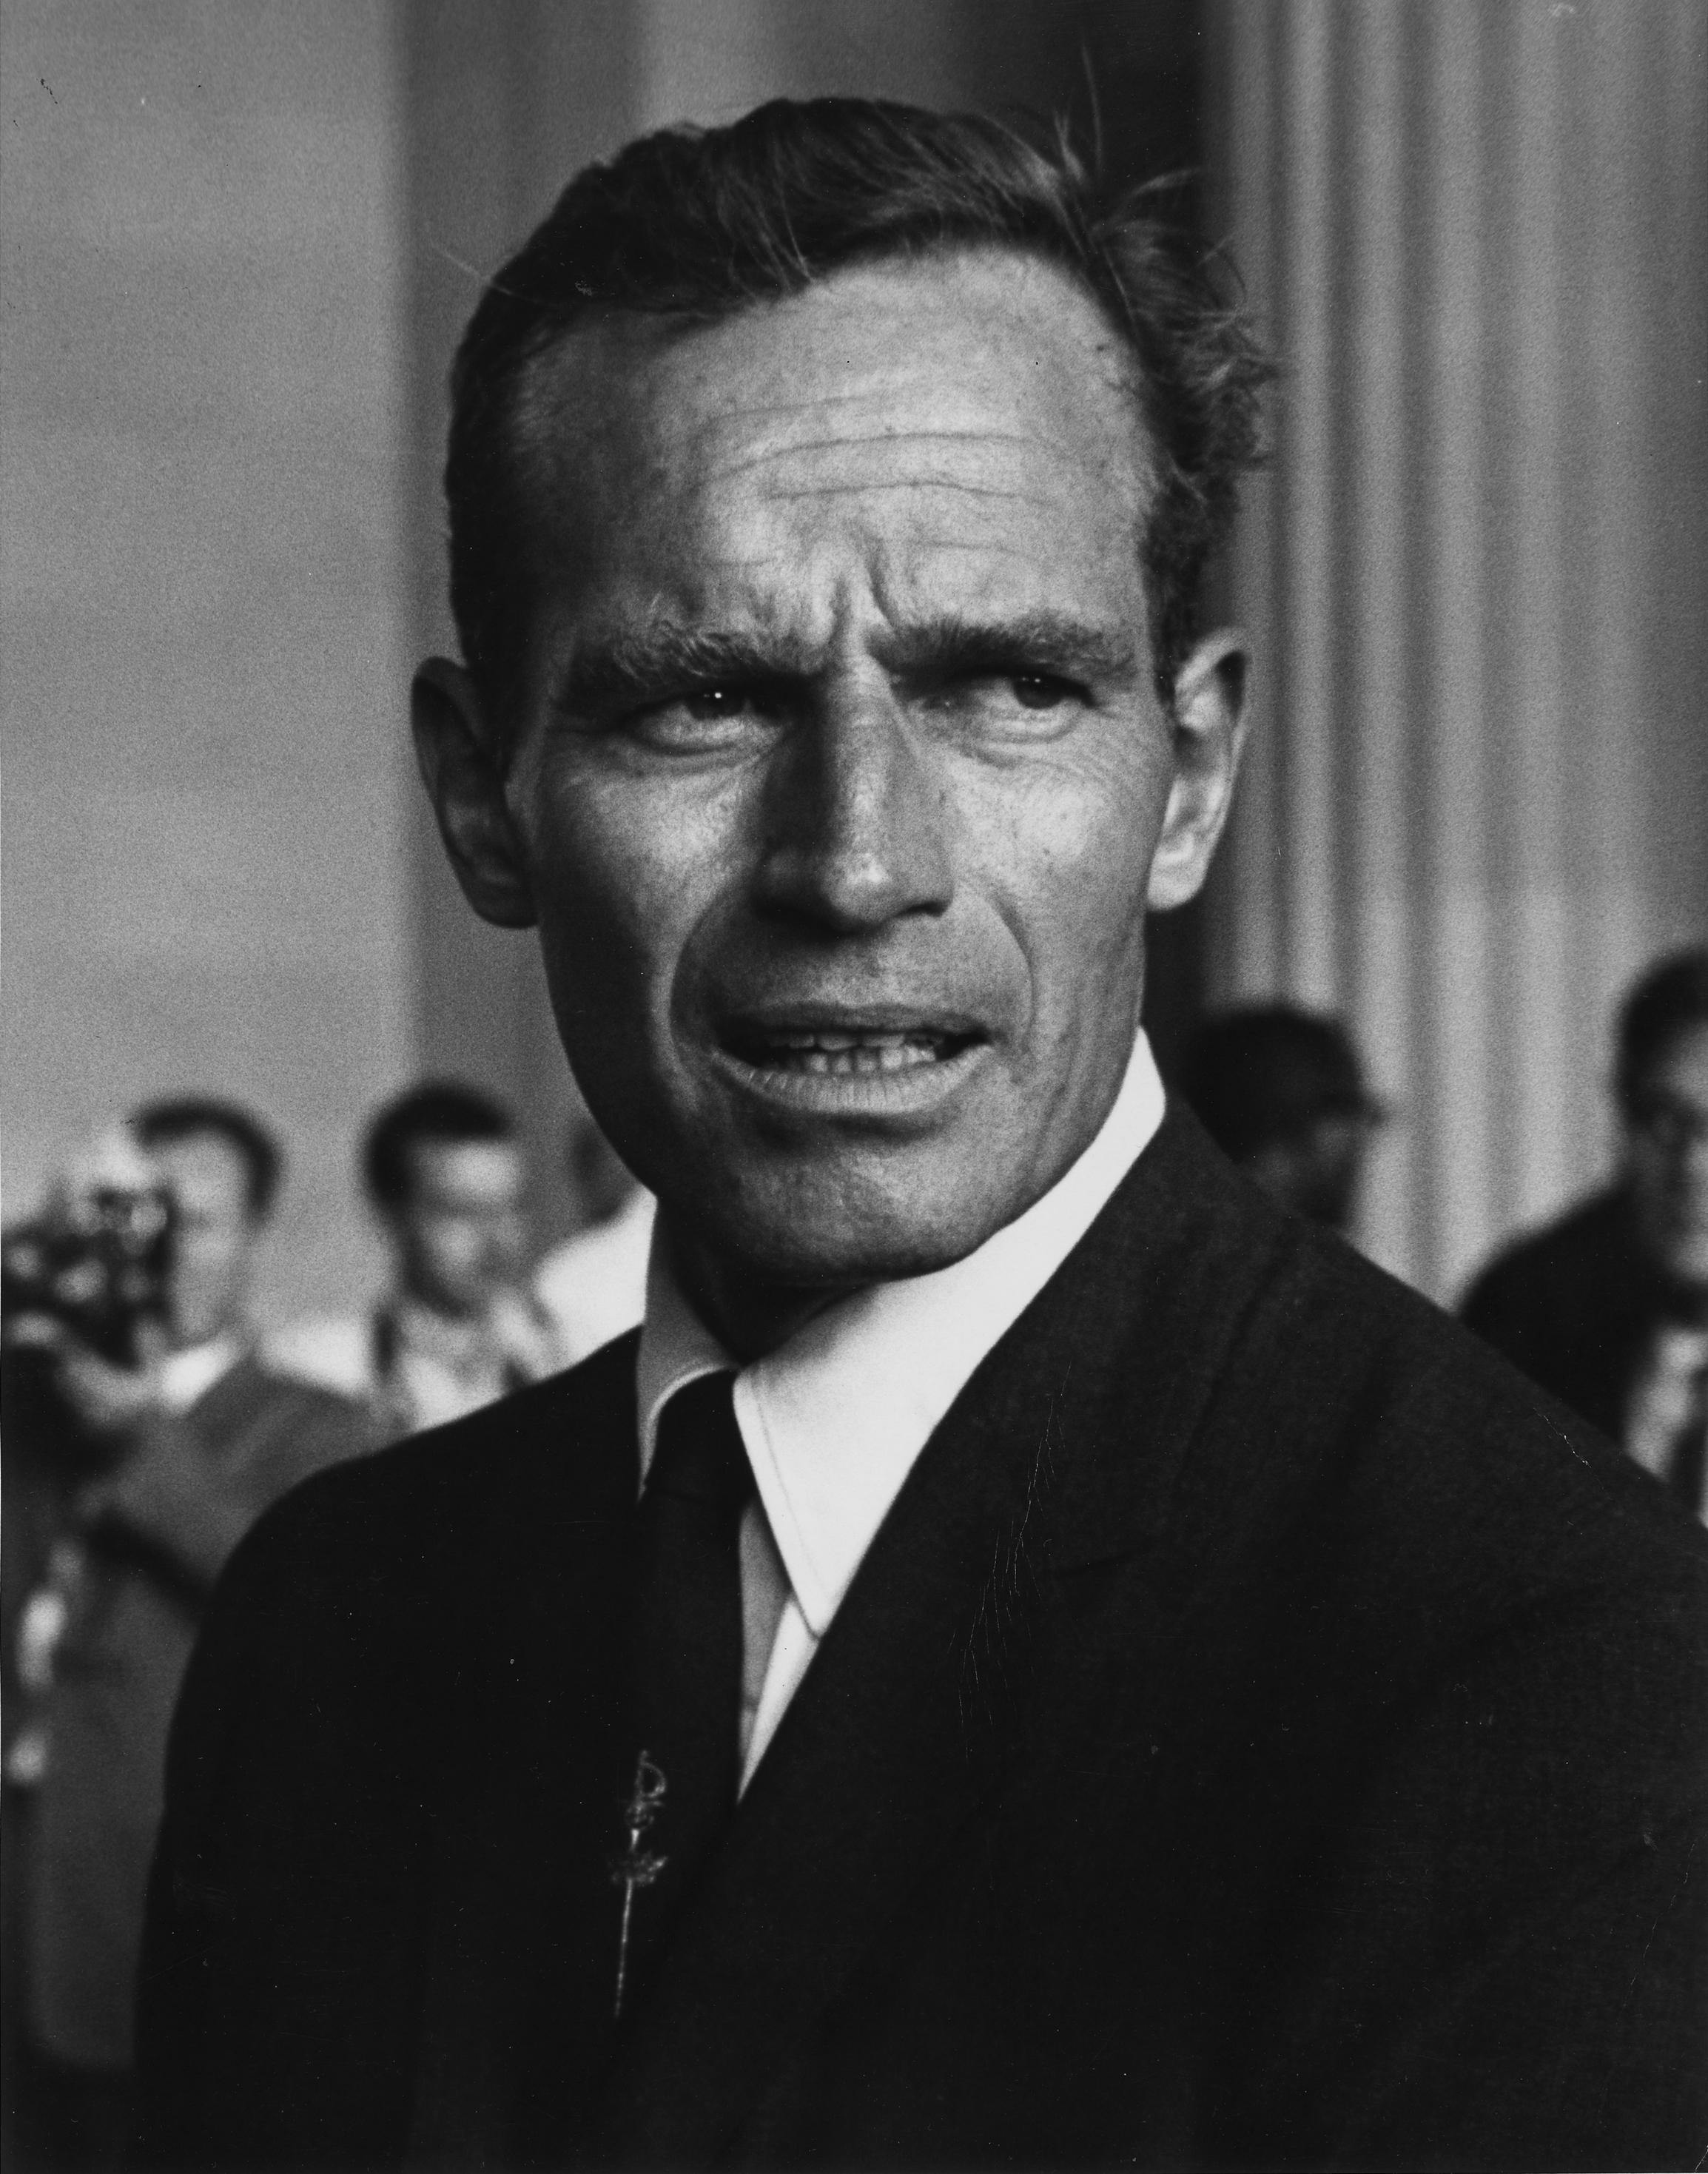 Charlton Heston at the 1963 Civil Rights March.